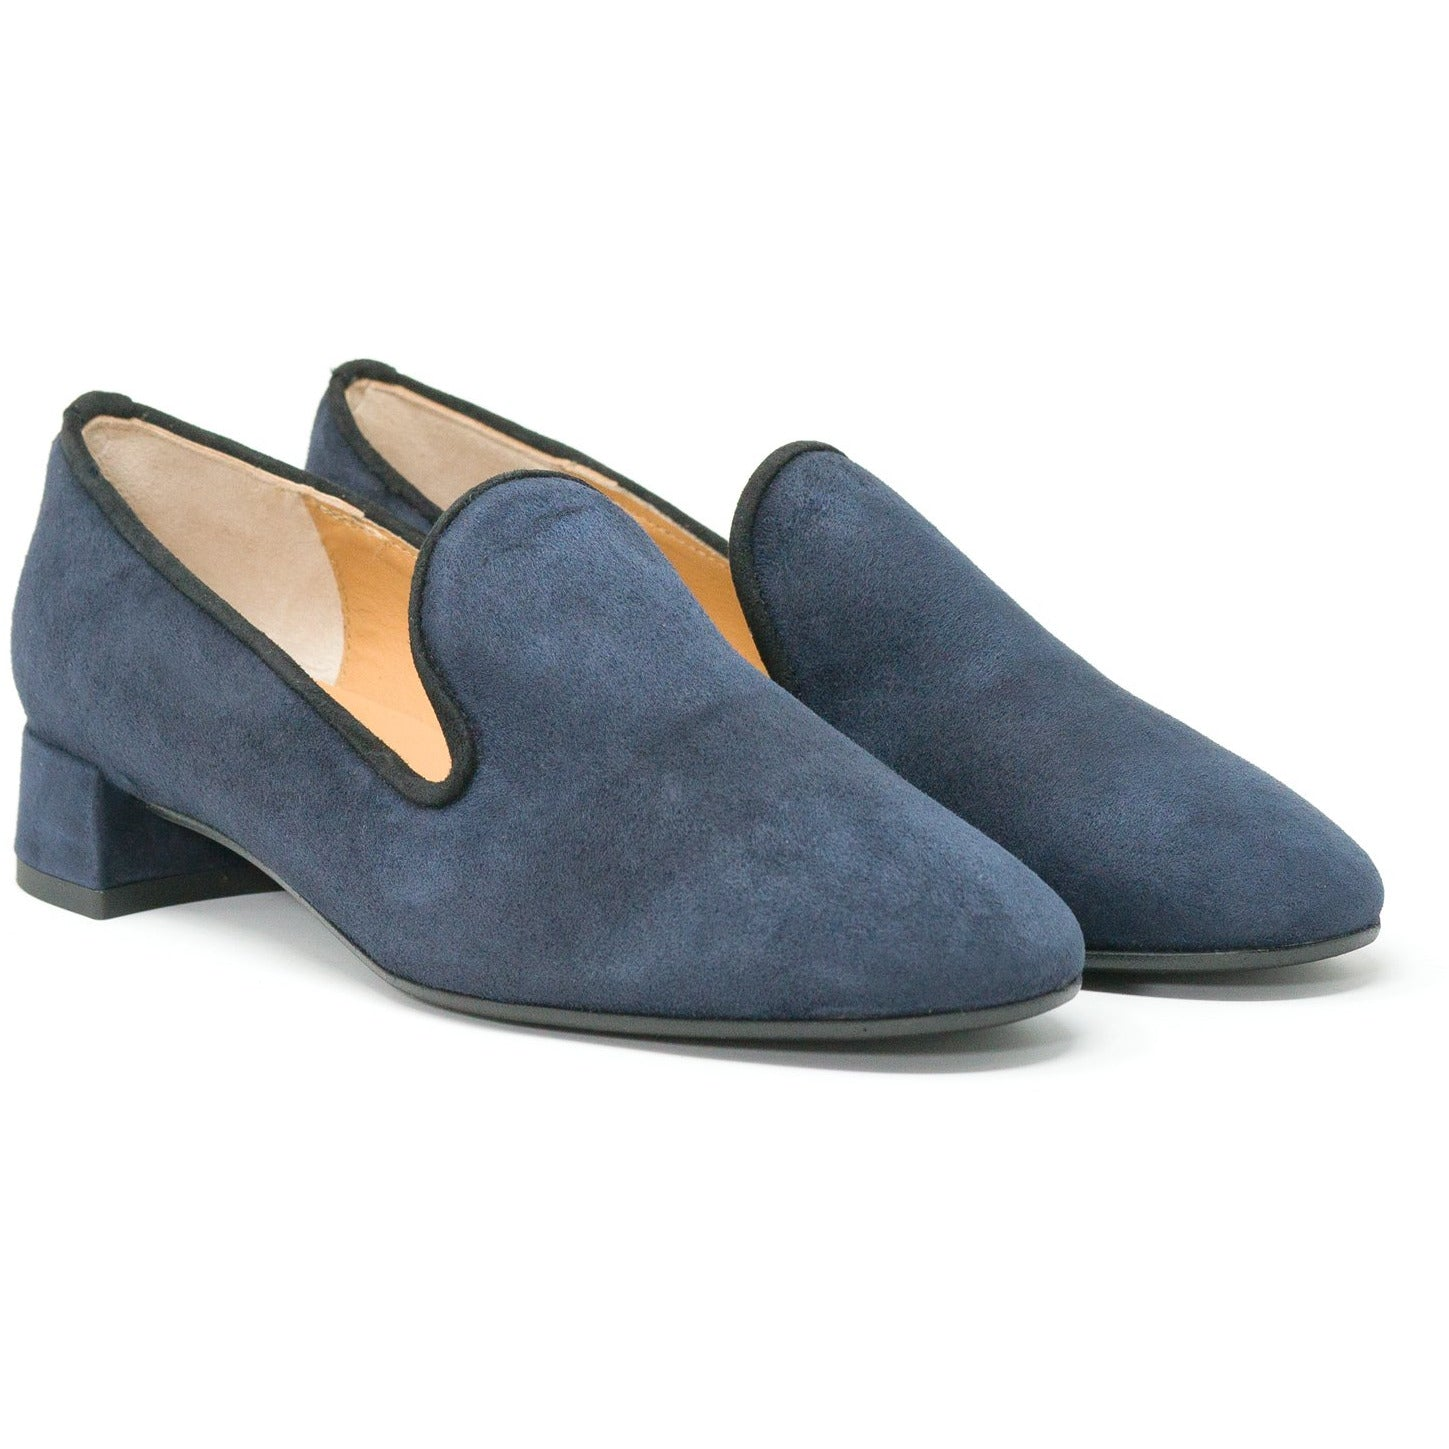 BAL7113 T25 Women Slip On - New Fall Winter 2019-2020 Collection